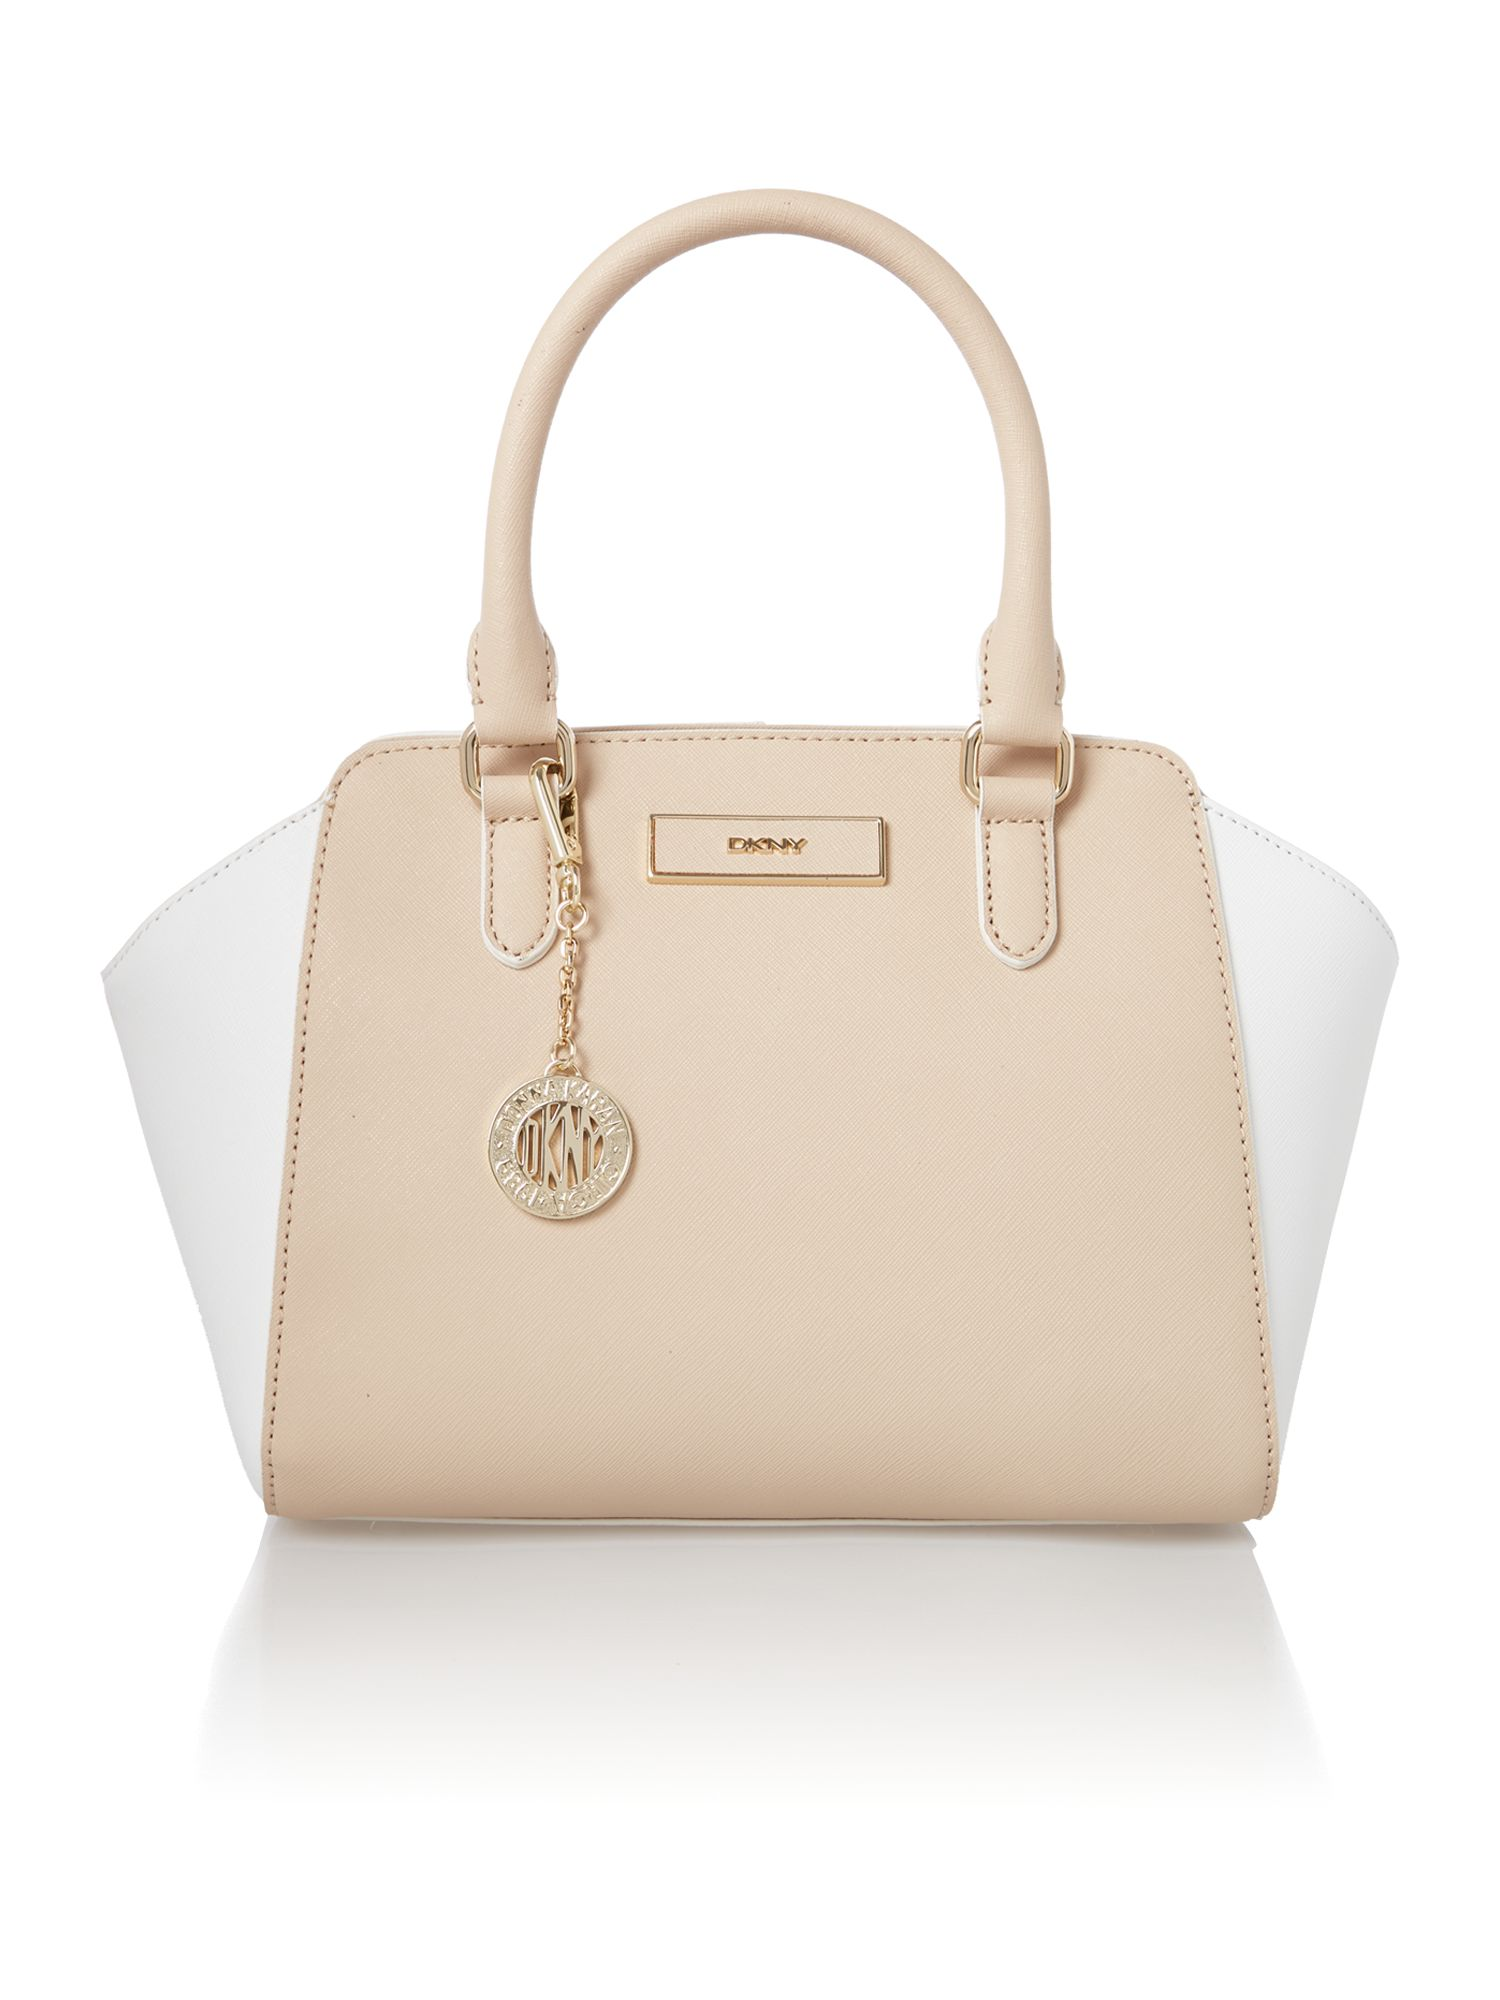 Saffiano neutral small tote bag